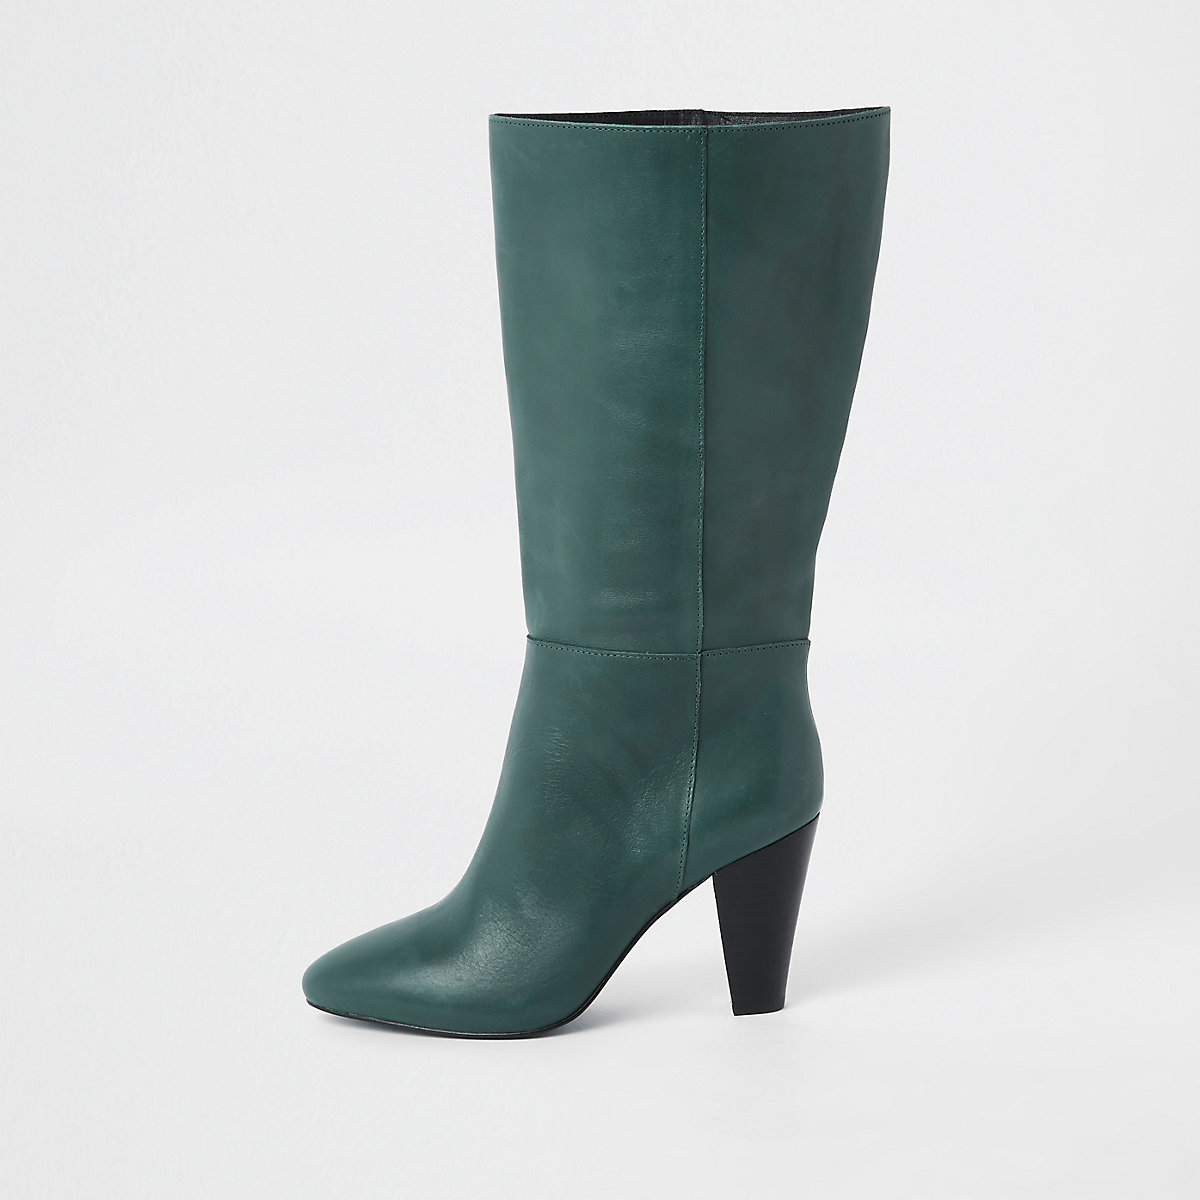 Green leather knee high block heel boots